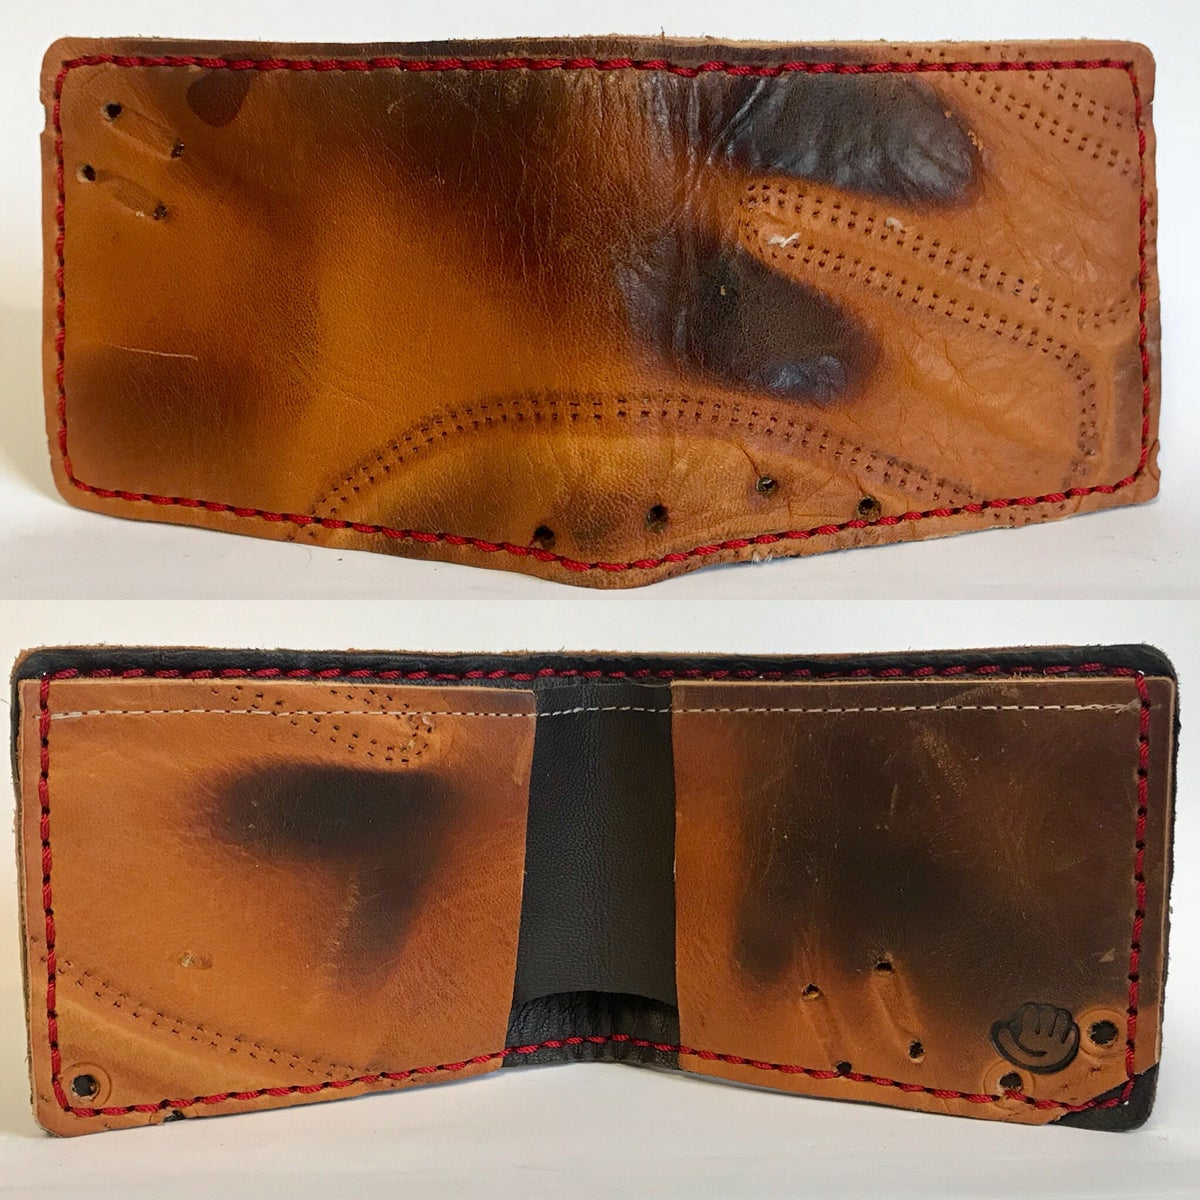 fbac6f8a4f8 Money Mitts - Vintage Baseball Glove Wallets